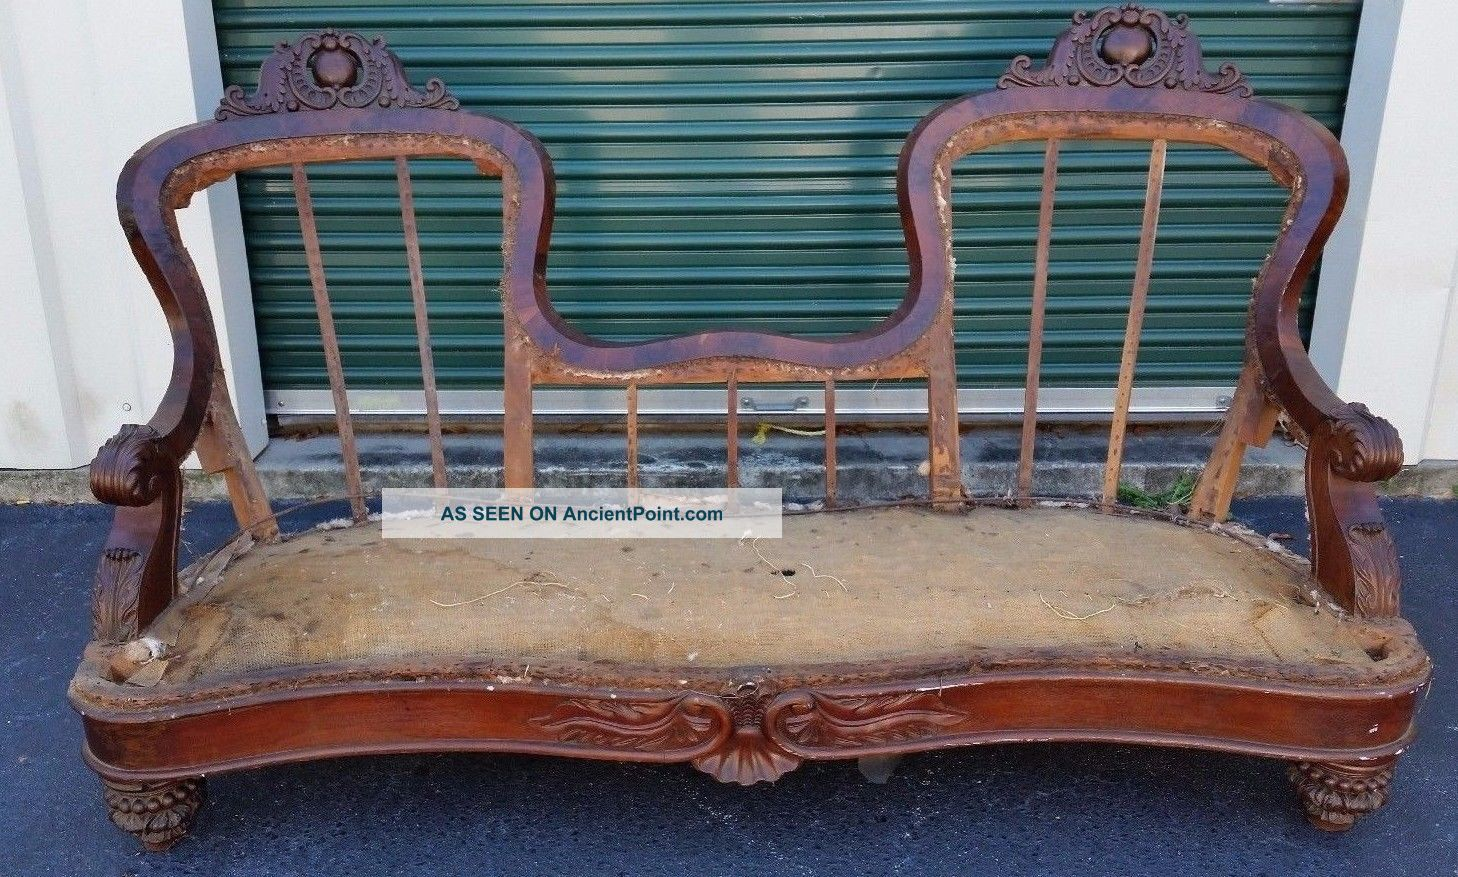 Antique Victorian Mahogany Sofa Frame Dawn Langley Hall Simmons Middleton Place 1800-1899 photo